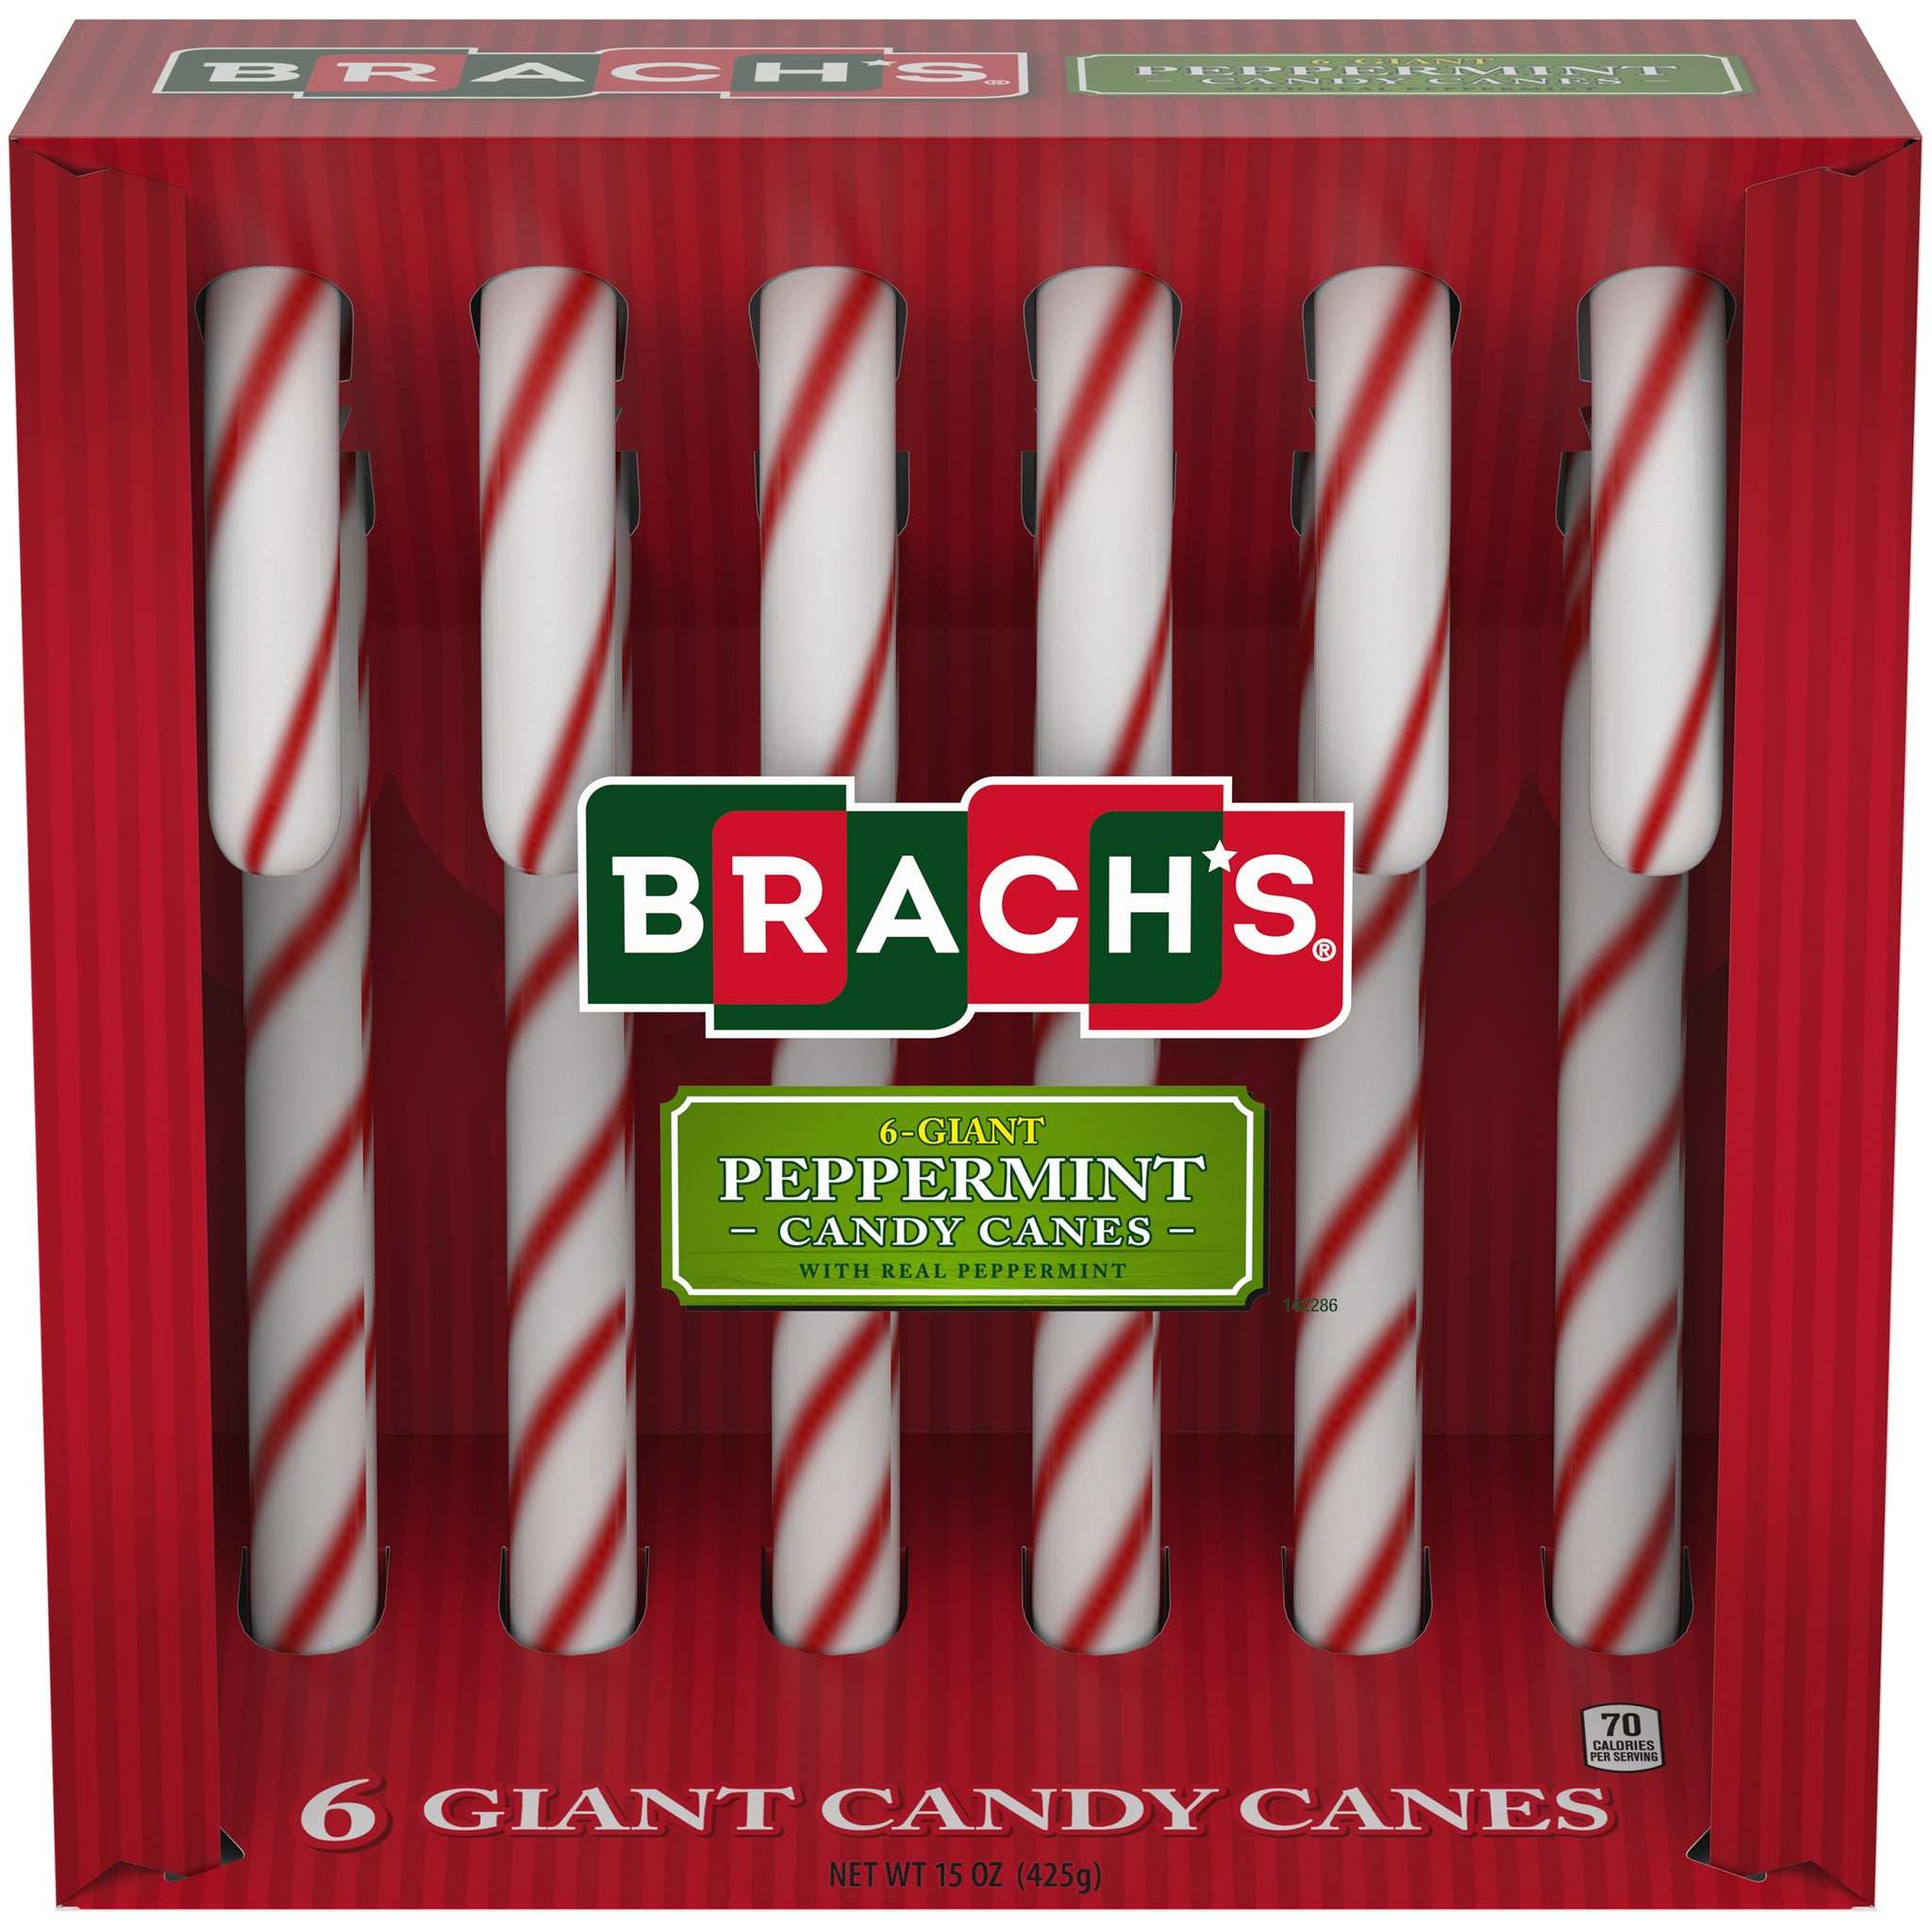 Brach's Peppermint Giant Candy Canes, 15oz, 6ct